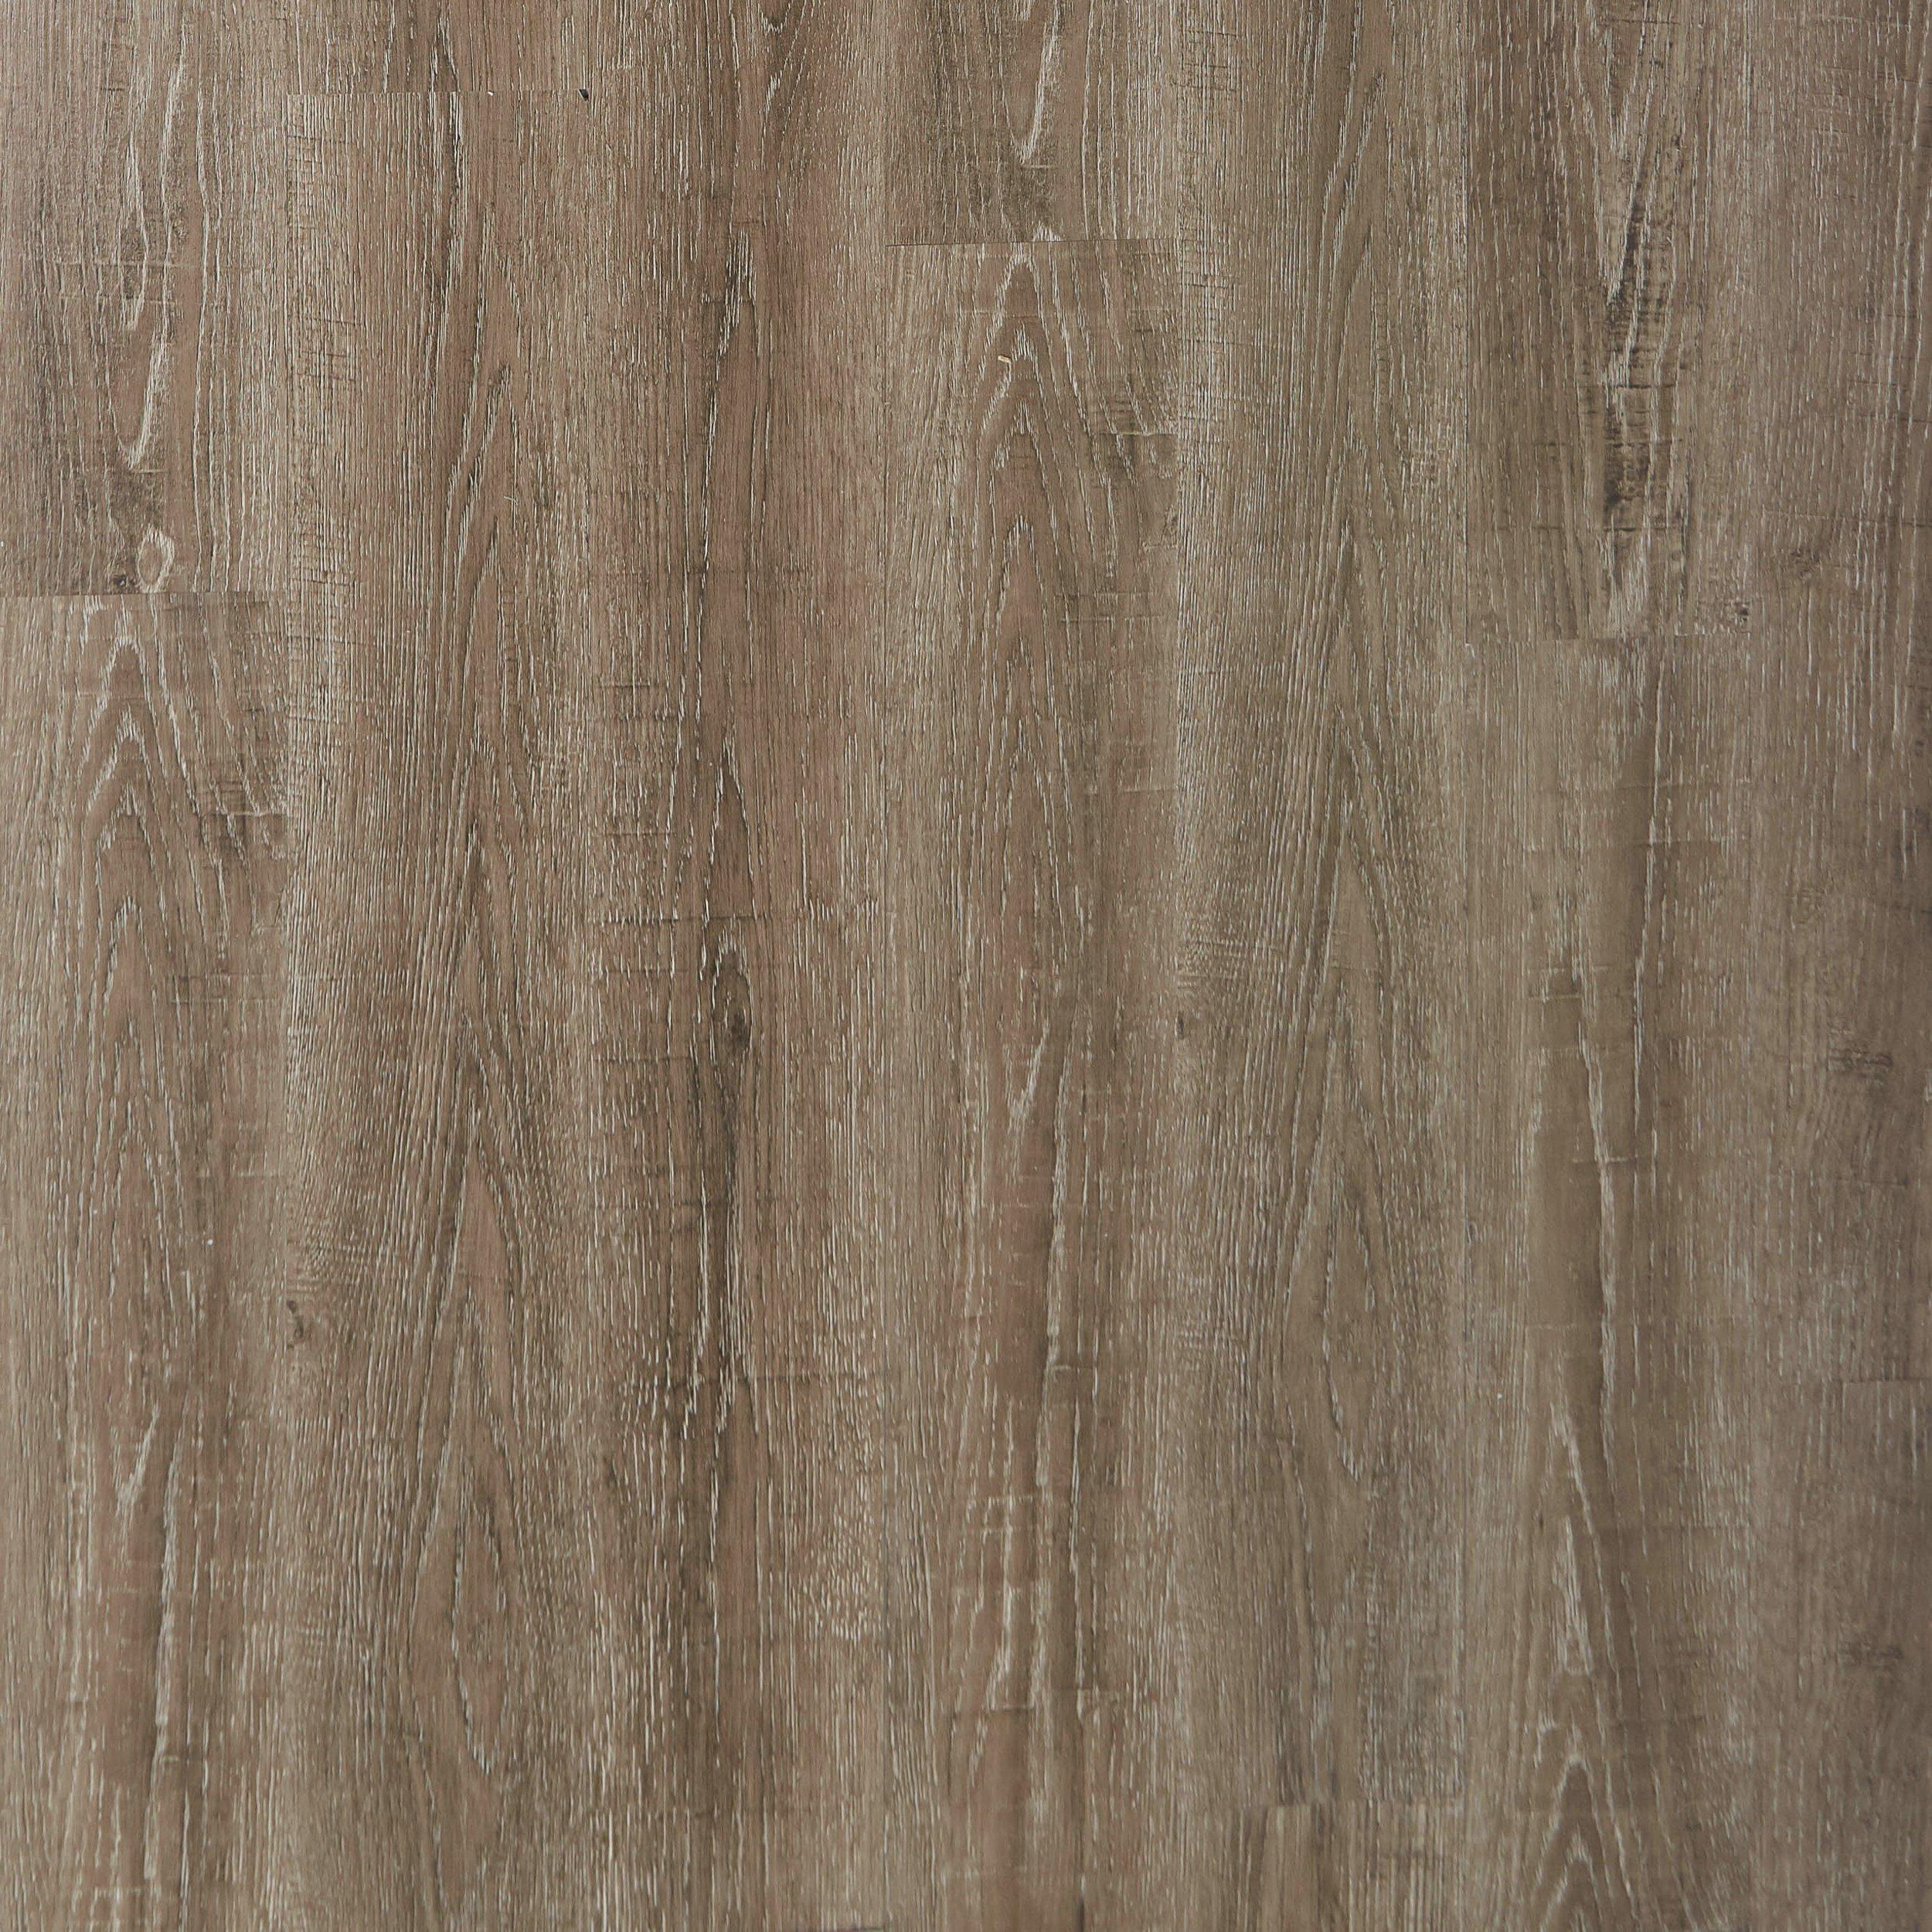 Weathered Charcoal Rigid Core Luxury Vinyl Plank 3mm 100498062 Floor And Decor